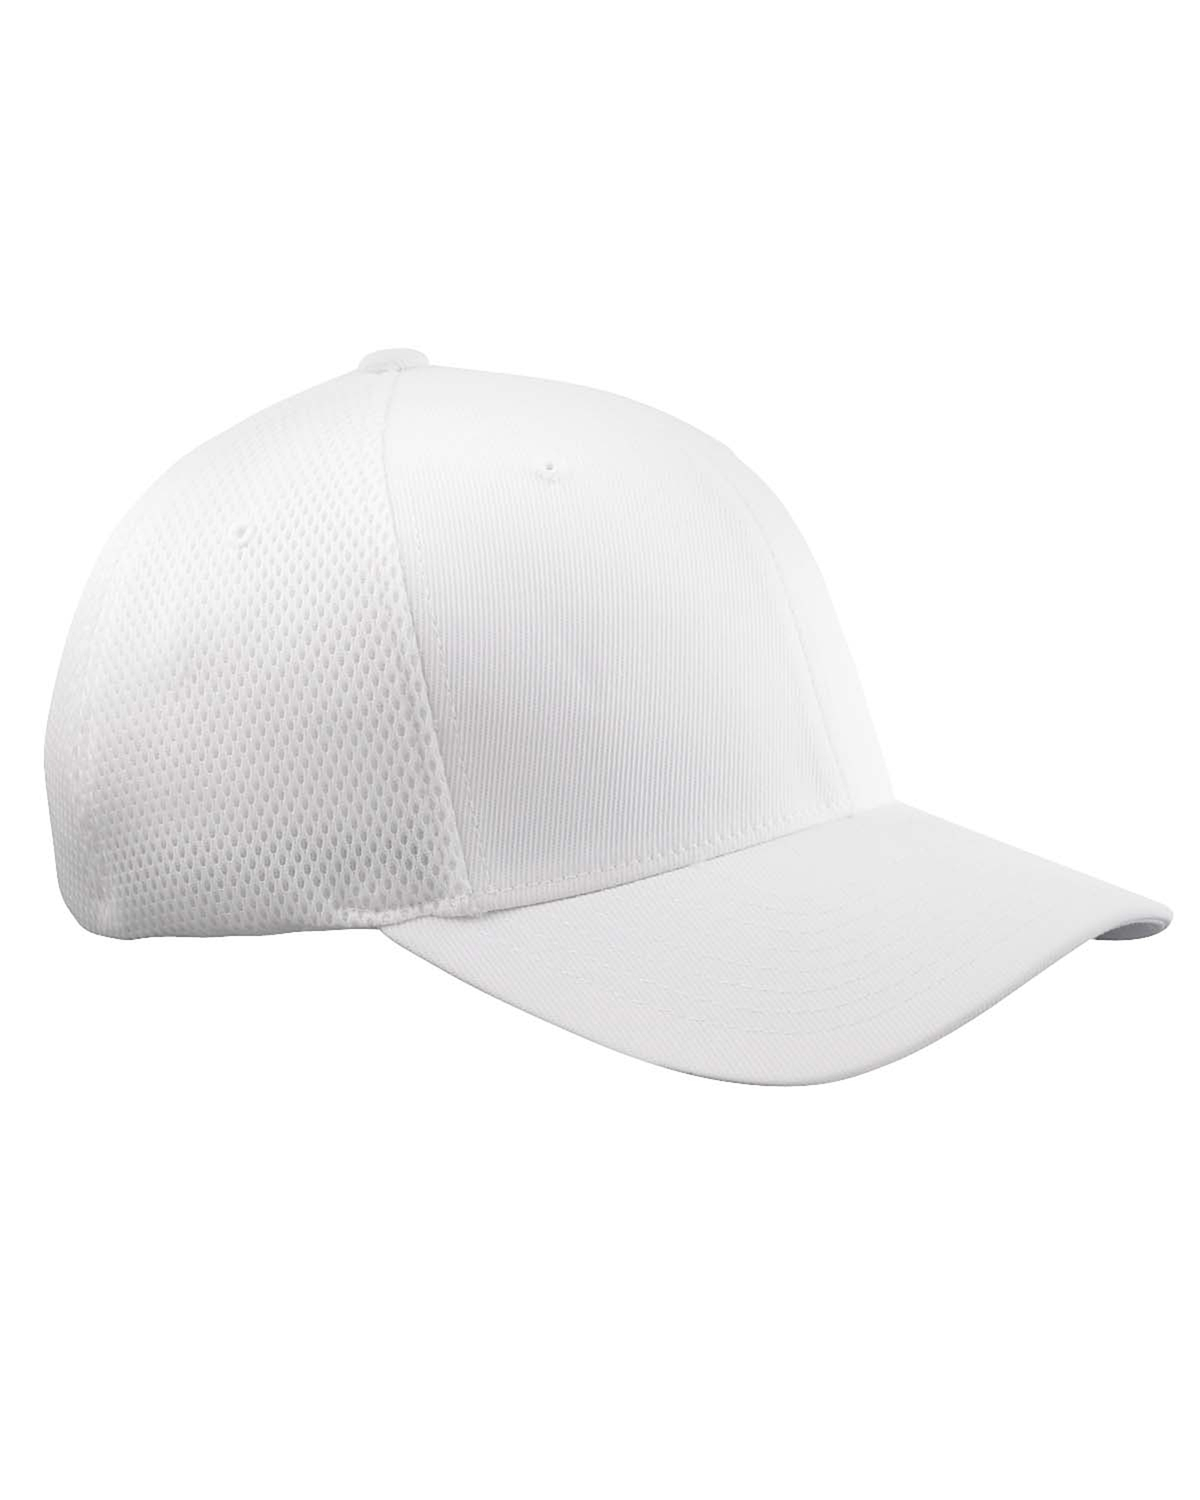 Adult Ultrafibre and Airmesh Cap